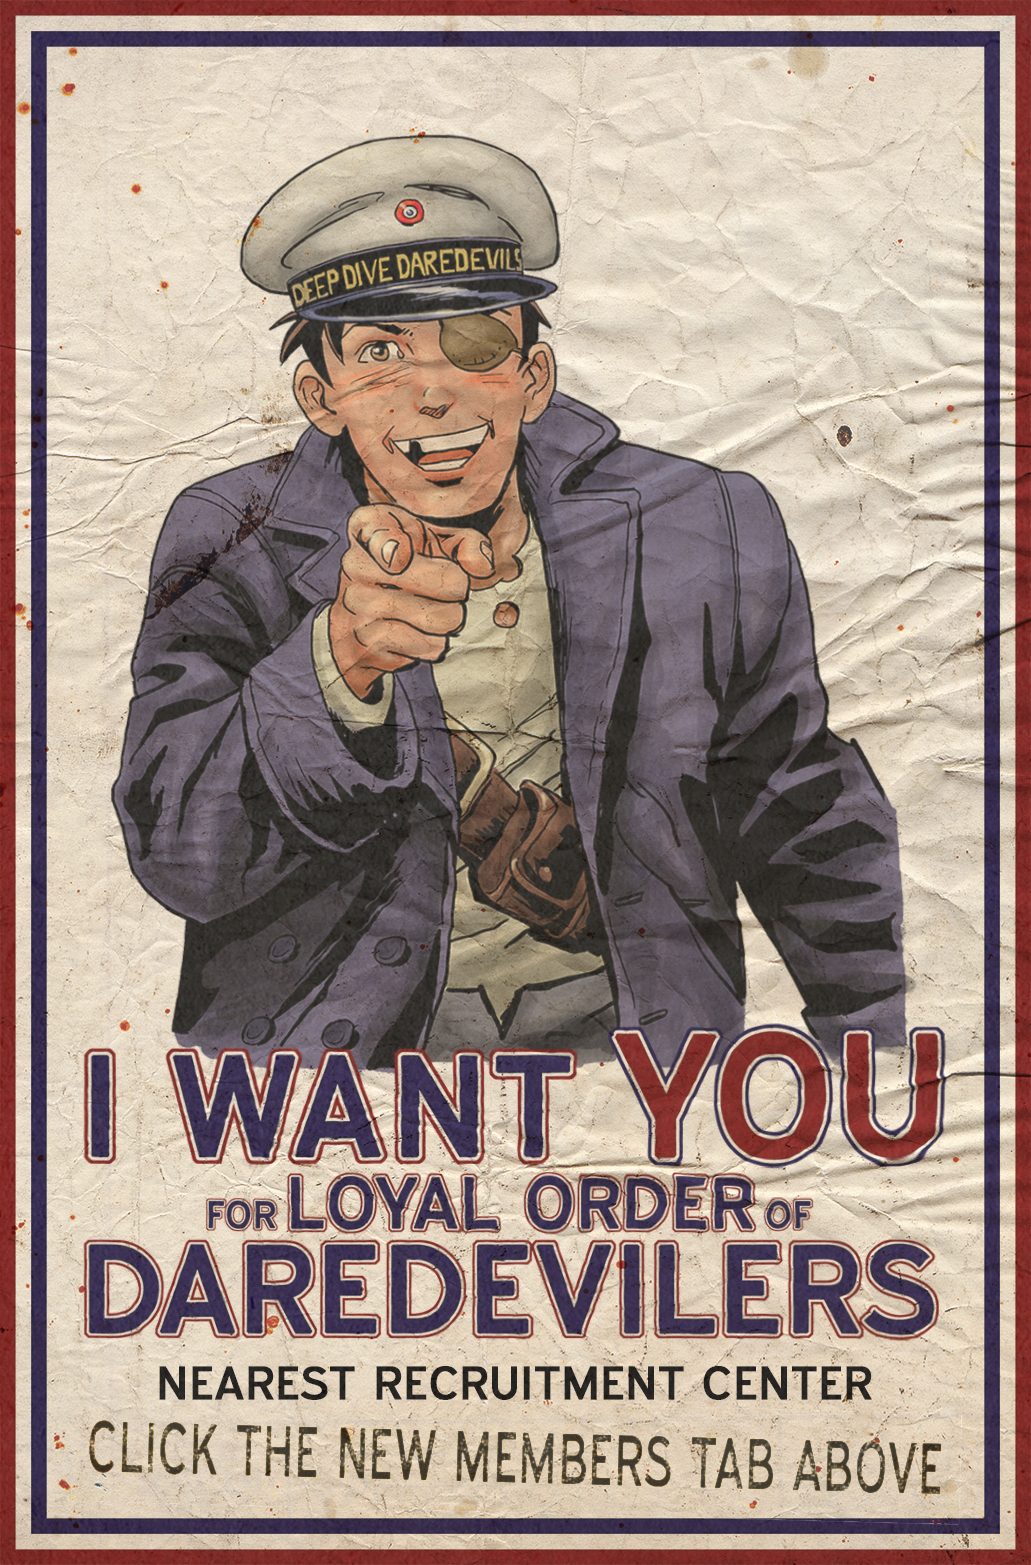 Loyal Order of Daredevilers